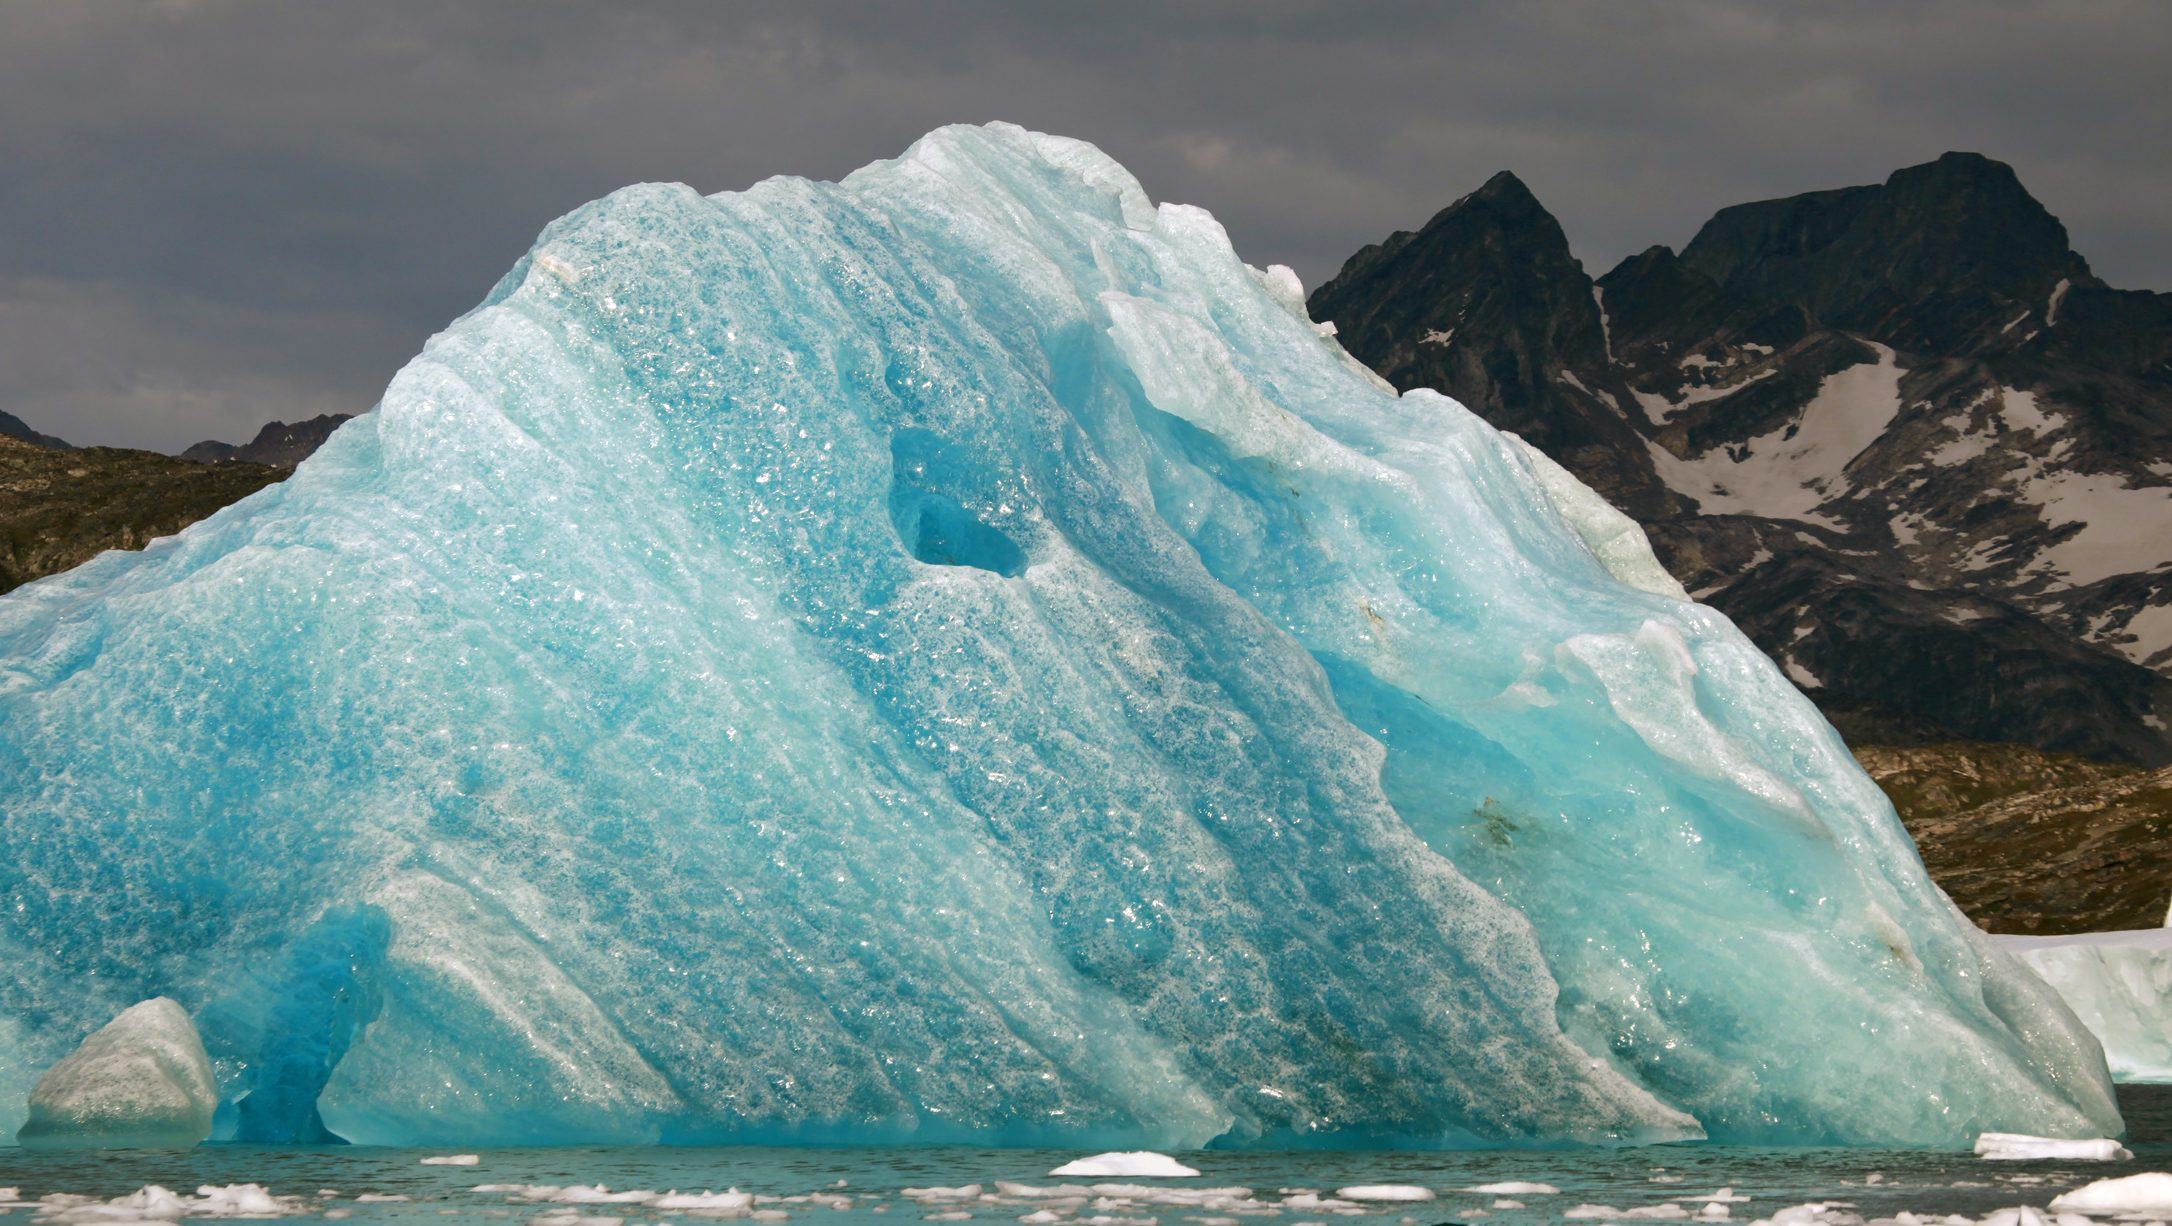 A deep blue iceberg floats in a fjord south of Tasiilaq in eastern Greenland August 2, 2009. The blue color is a result of compression and repeated thawing and refreezing. REUTERS/Bob Strong (GREENLAND) - RTR26KG7